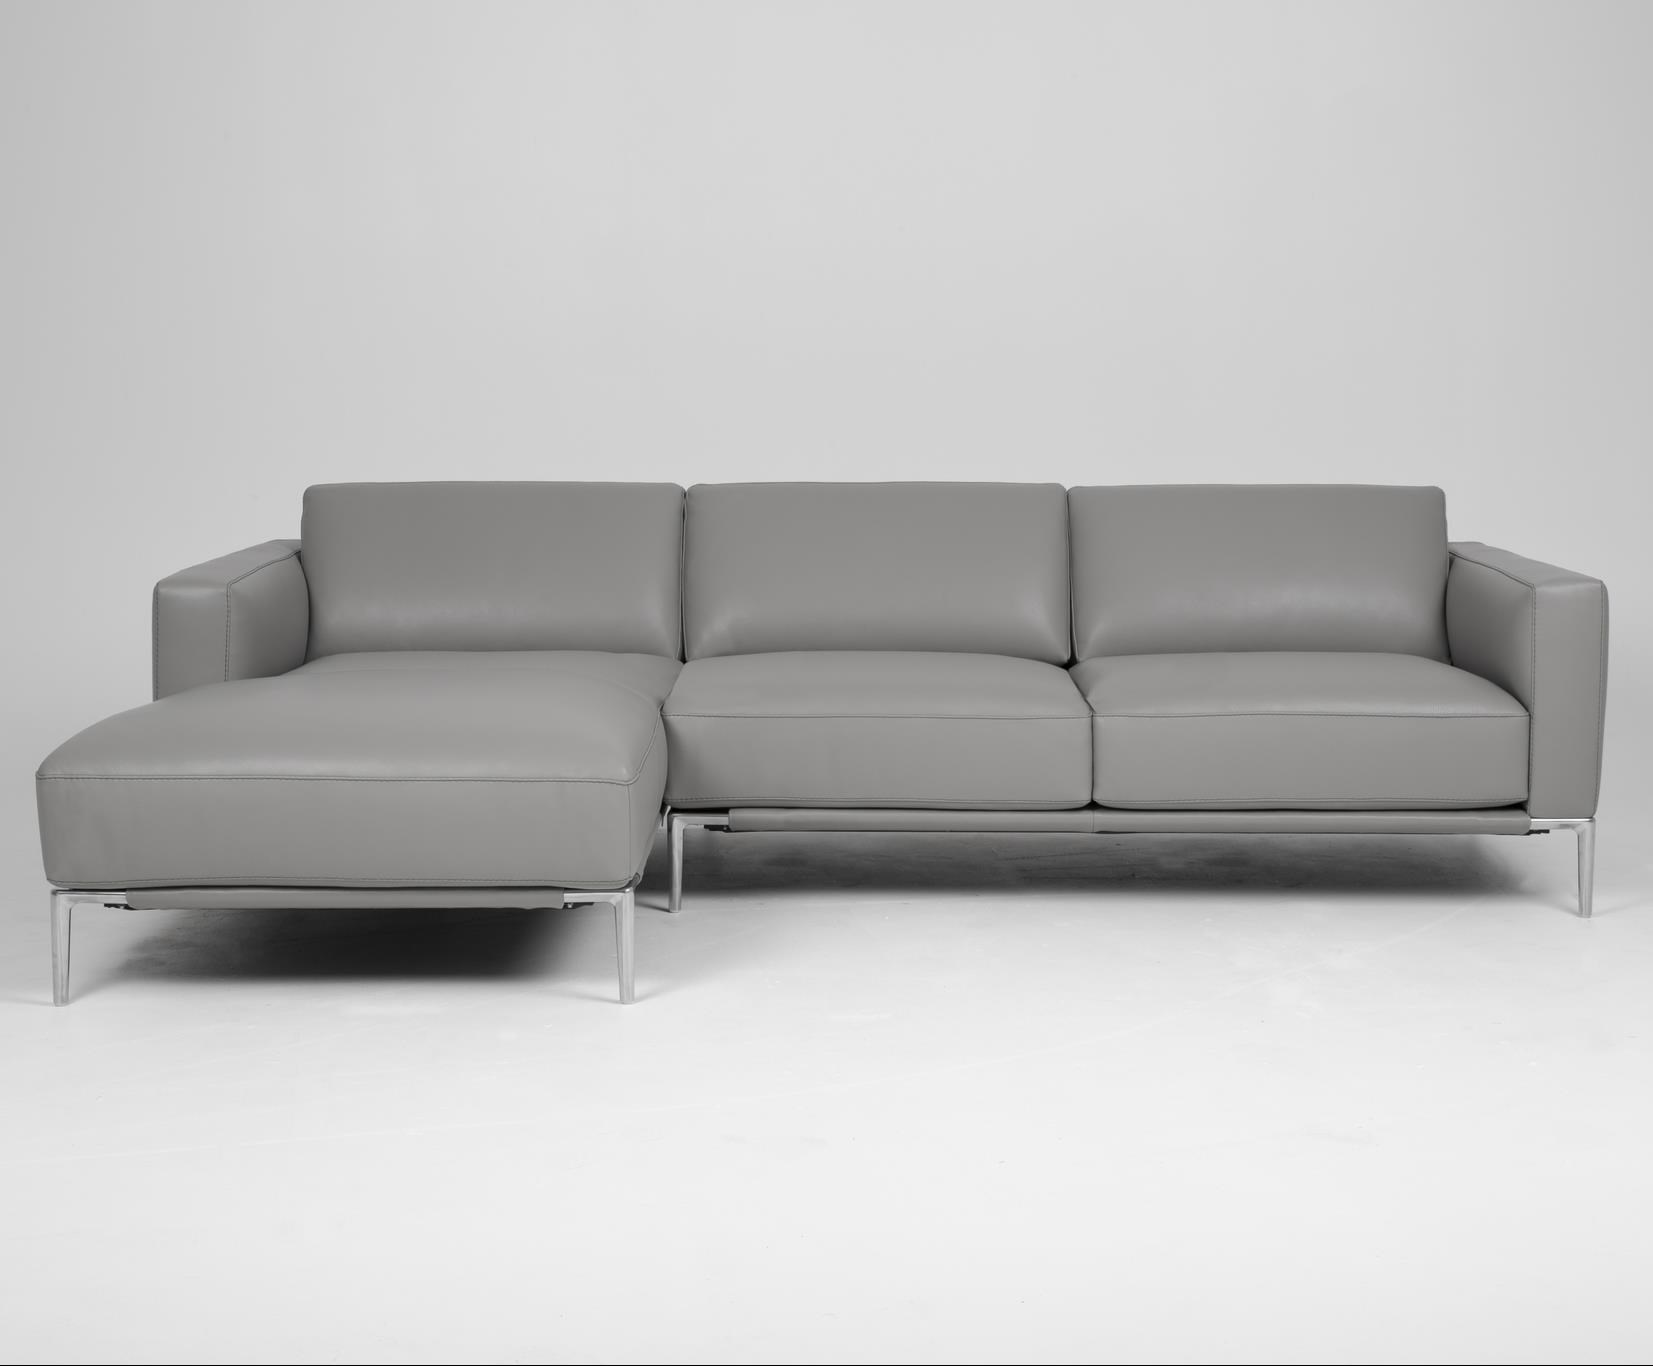 London Sofa with Chaise by American Leather at Baer's Furniture